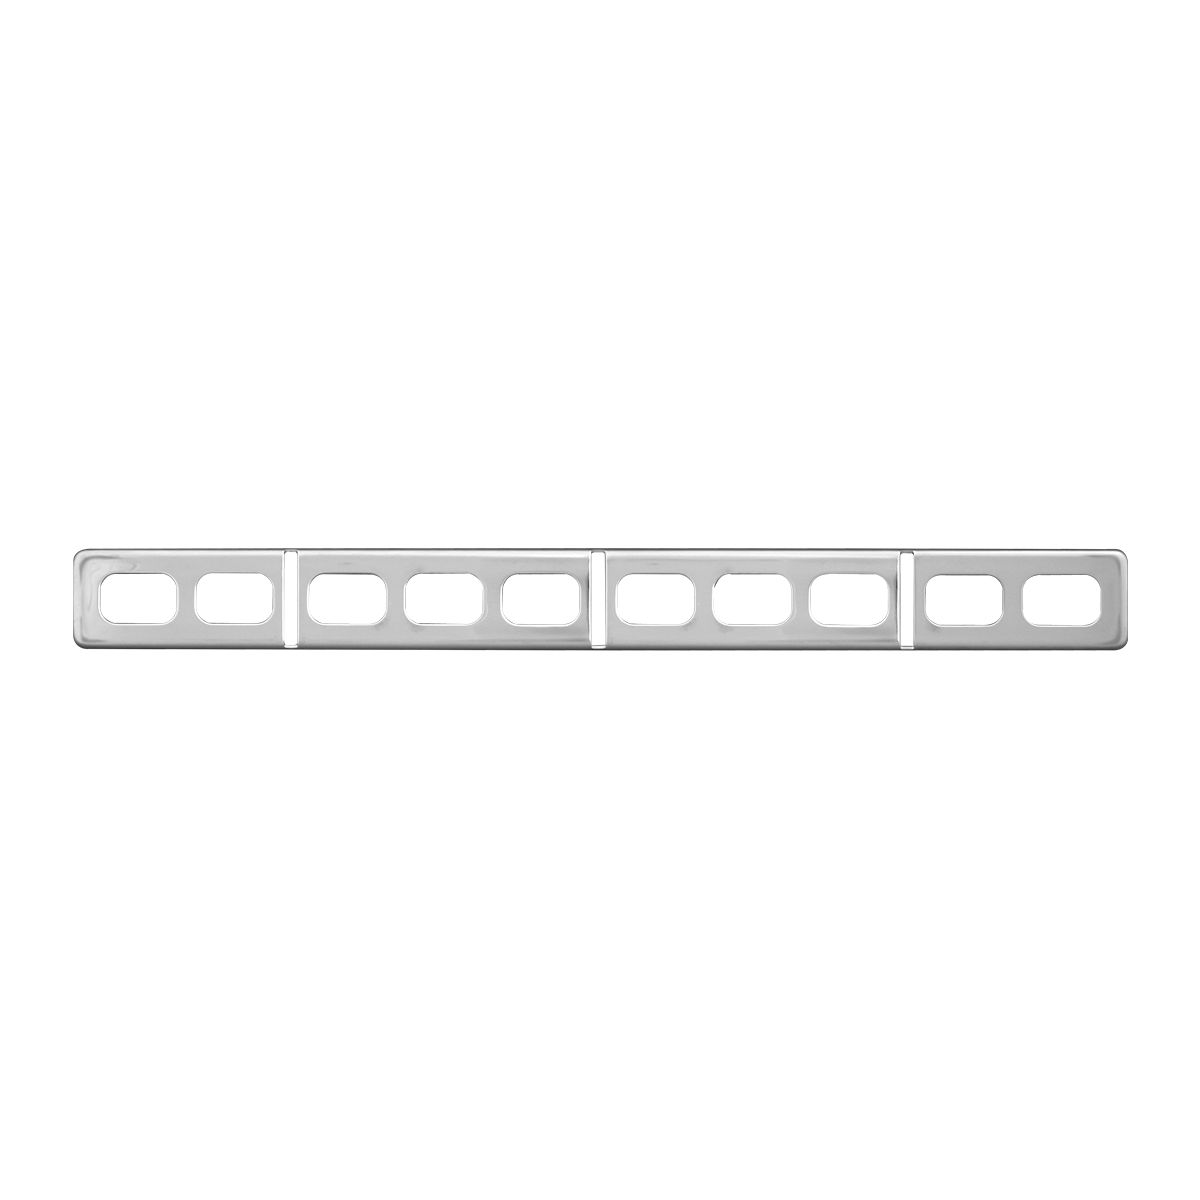 67930 Stainless Steel Push Button Panel Cover for FL Century